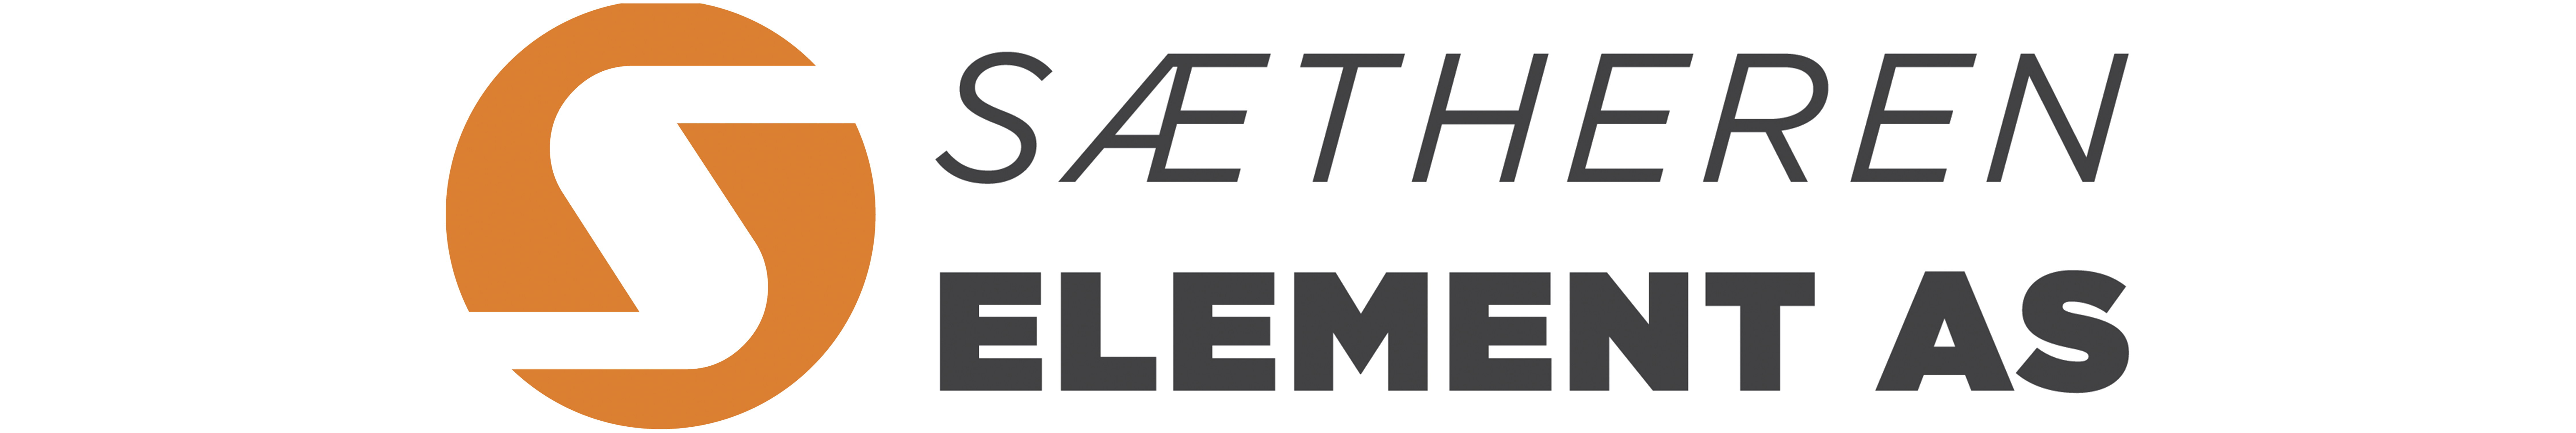 Sætheren Element AS Logo